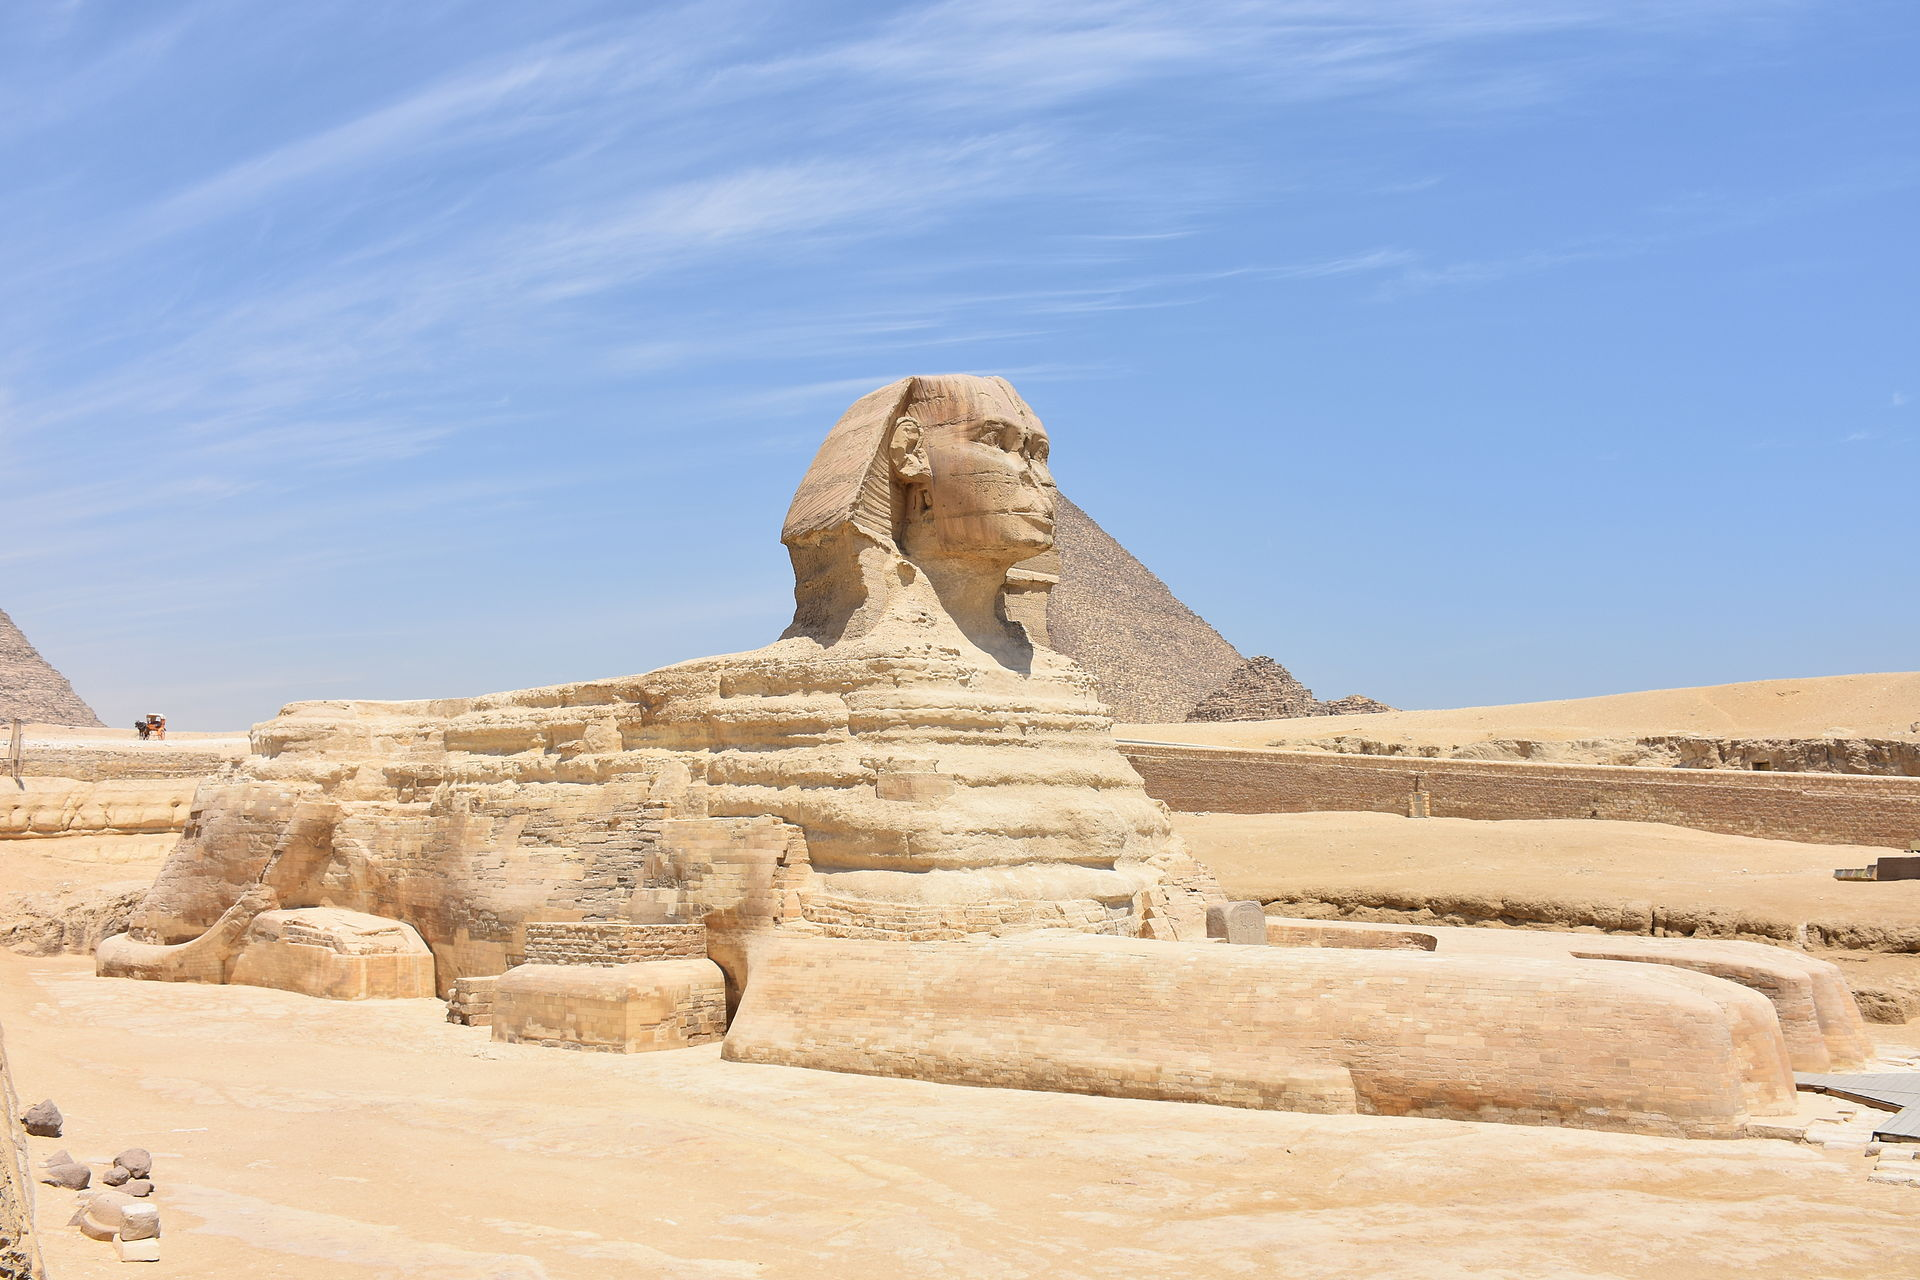 an analysis of the great sphinx of giza The sphinx other pyramids egypt the simplest truths appear to remain hidden behind the apparent 'veil of mystery' that surrounds the great pyramid of giza the historical analysis of the great pyramid:a chronology of discovery at giza 2.